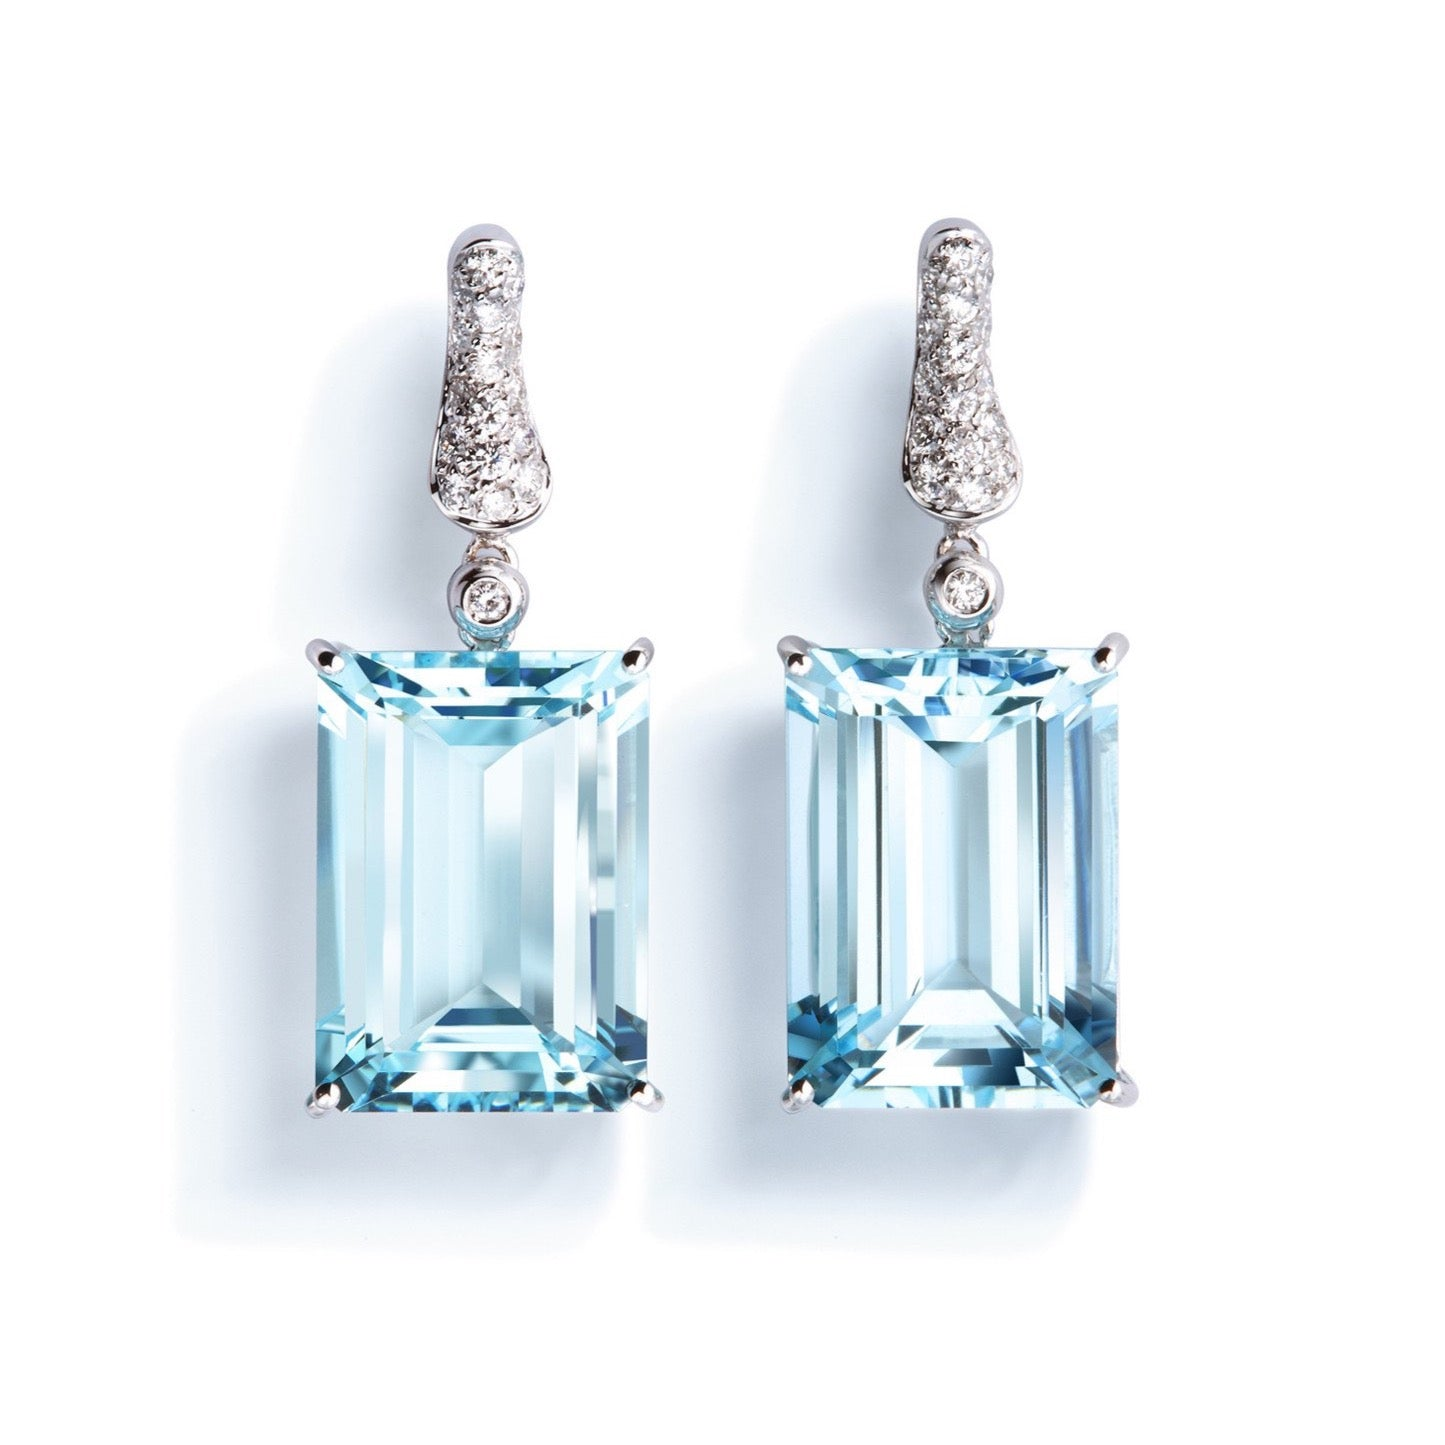 "A & Furst ""Fleur de Lys"" Earrings with Aquamarine and Diamonds, 18k White Gold"